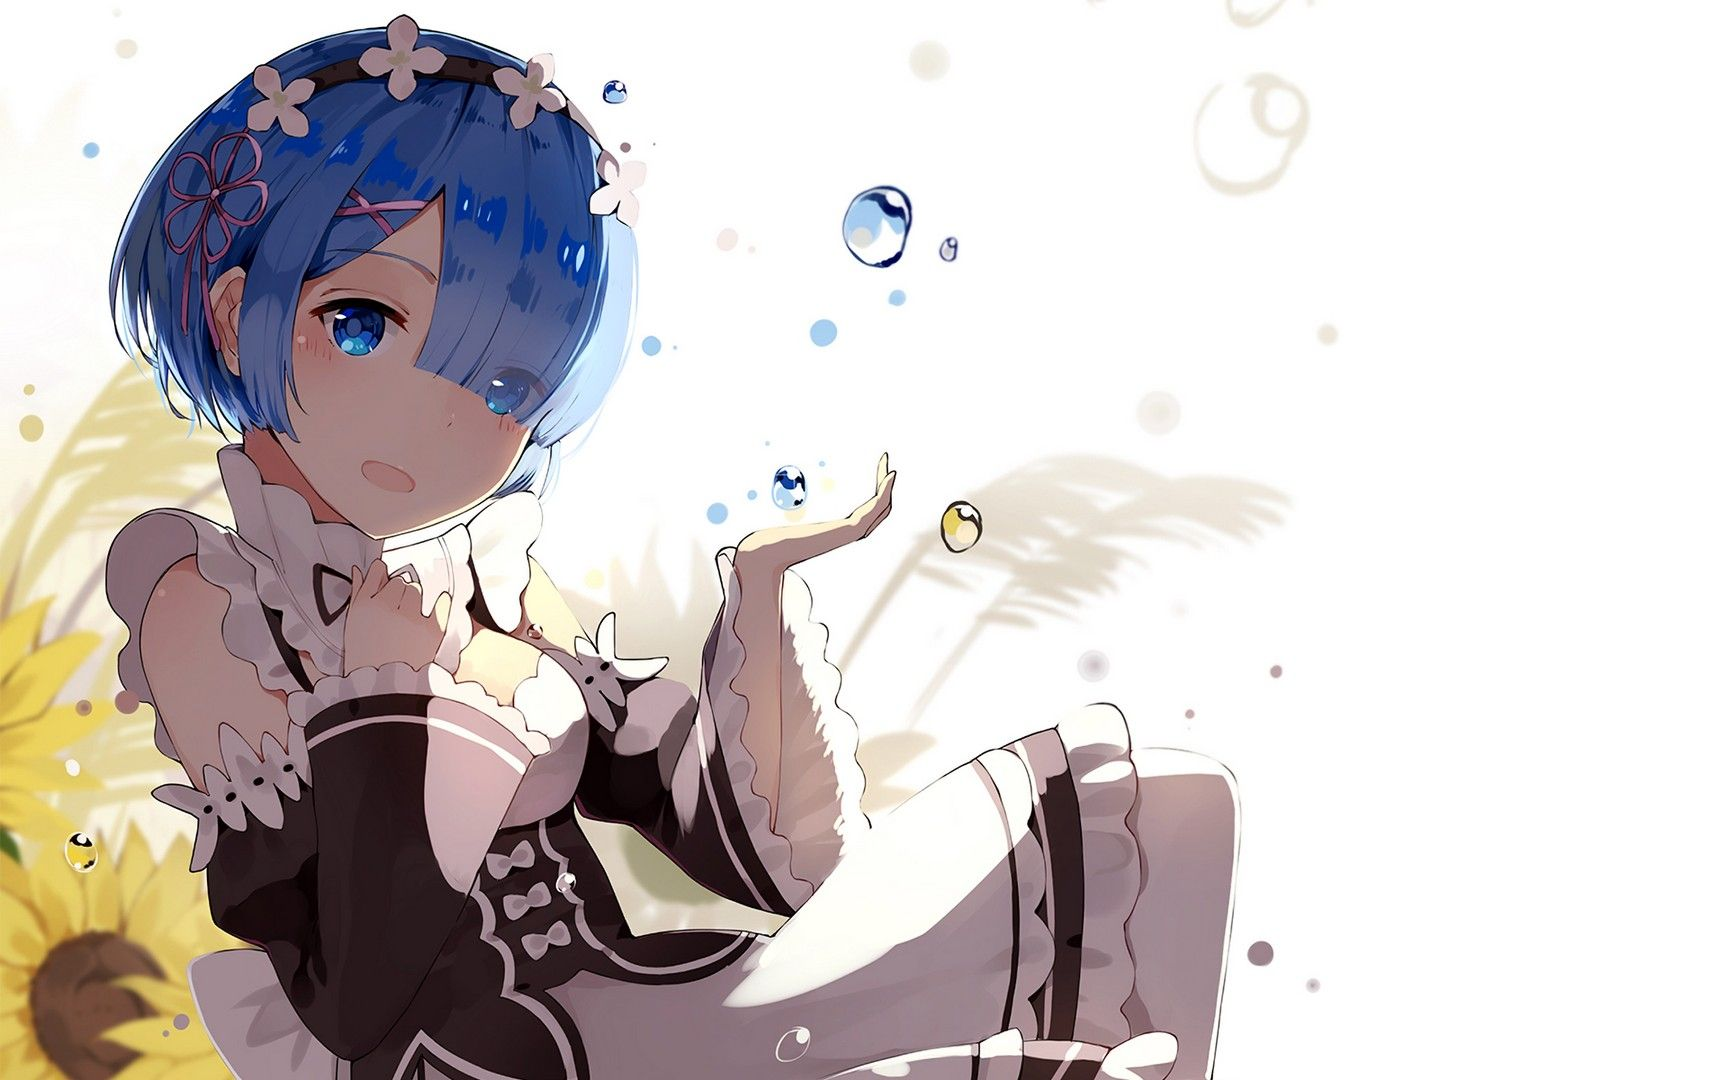 Rem Re Zero Wallpaper For Computer Anime Re Zero Wallpaper